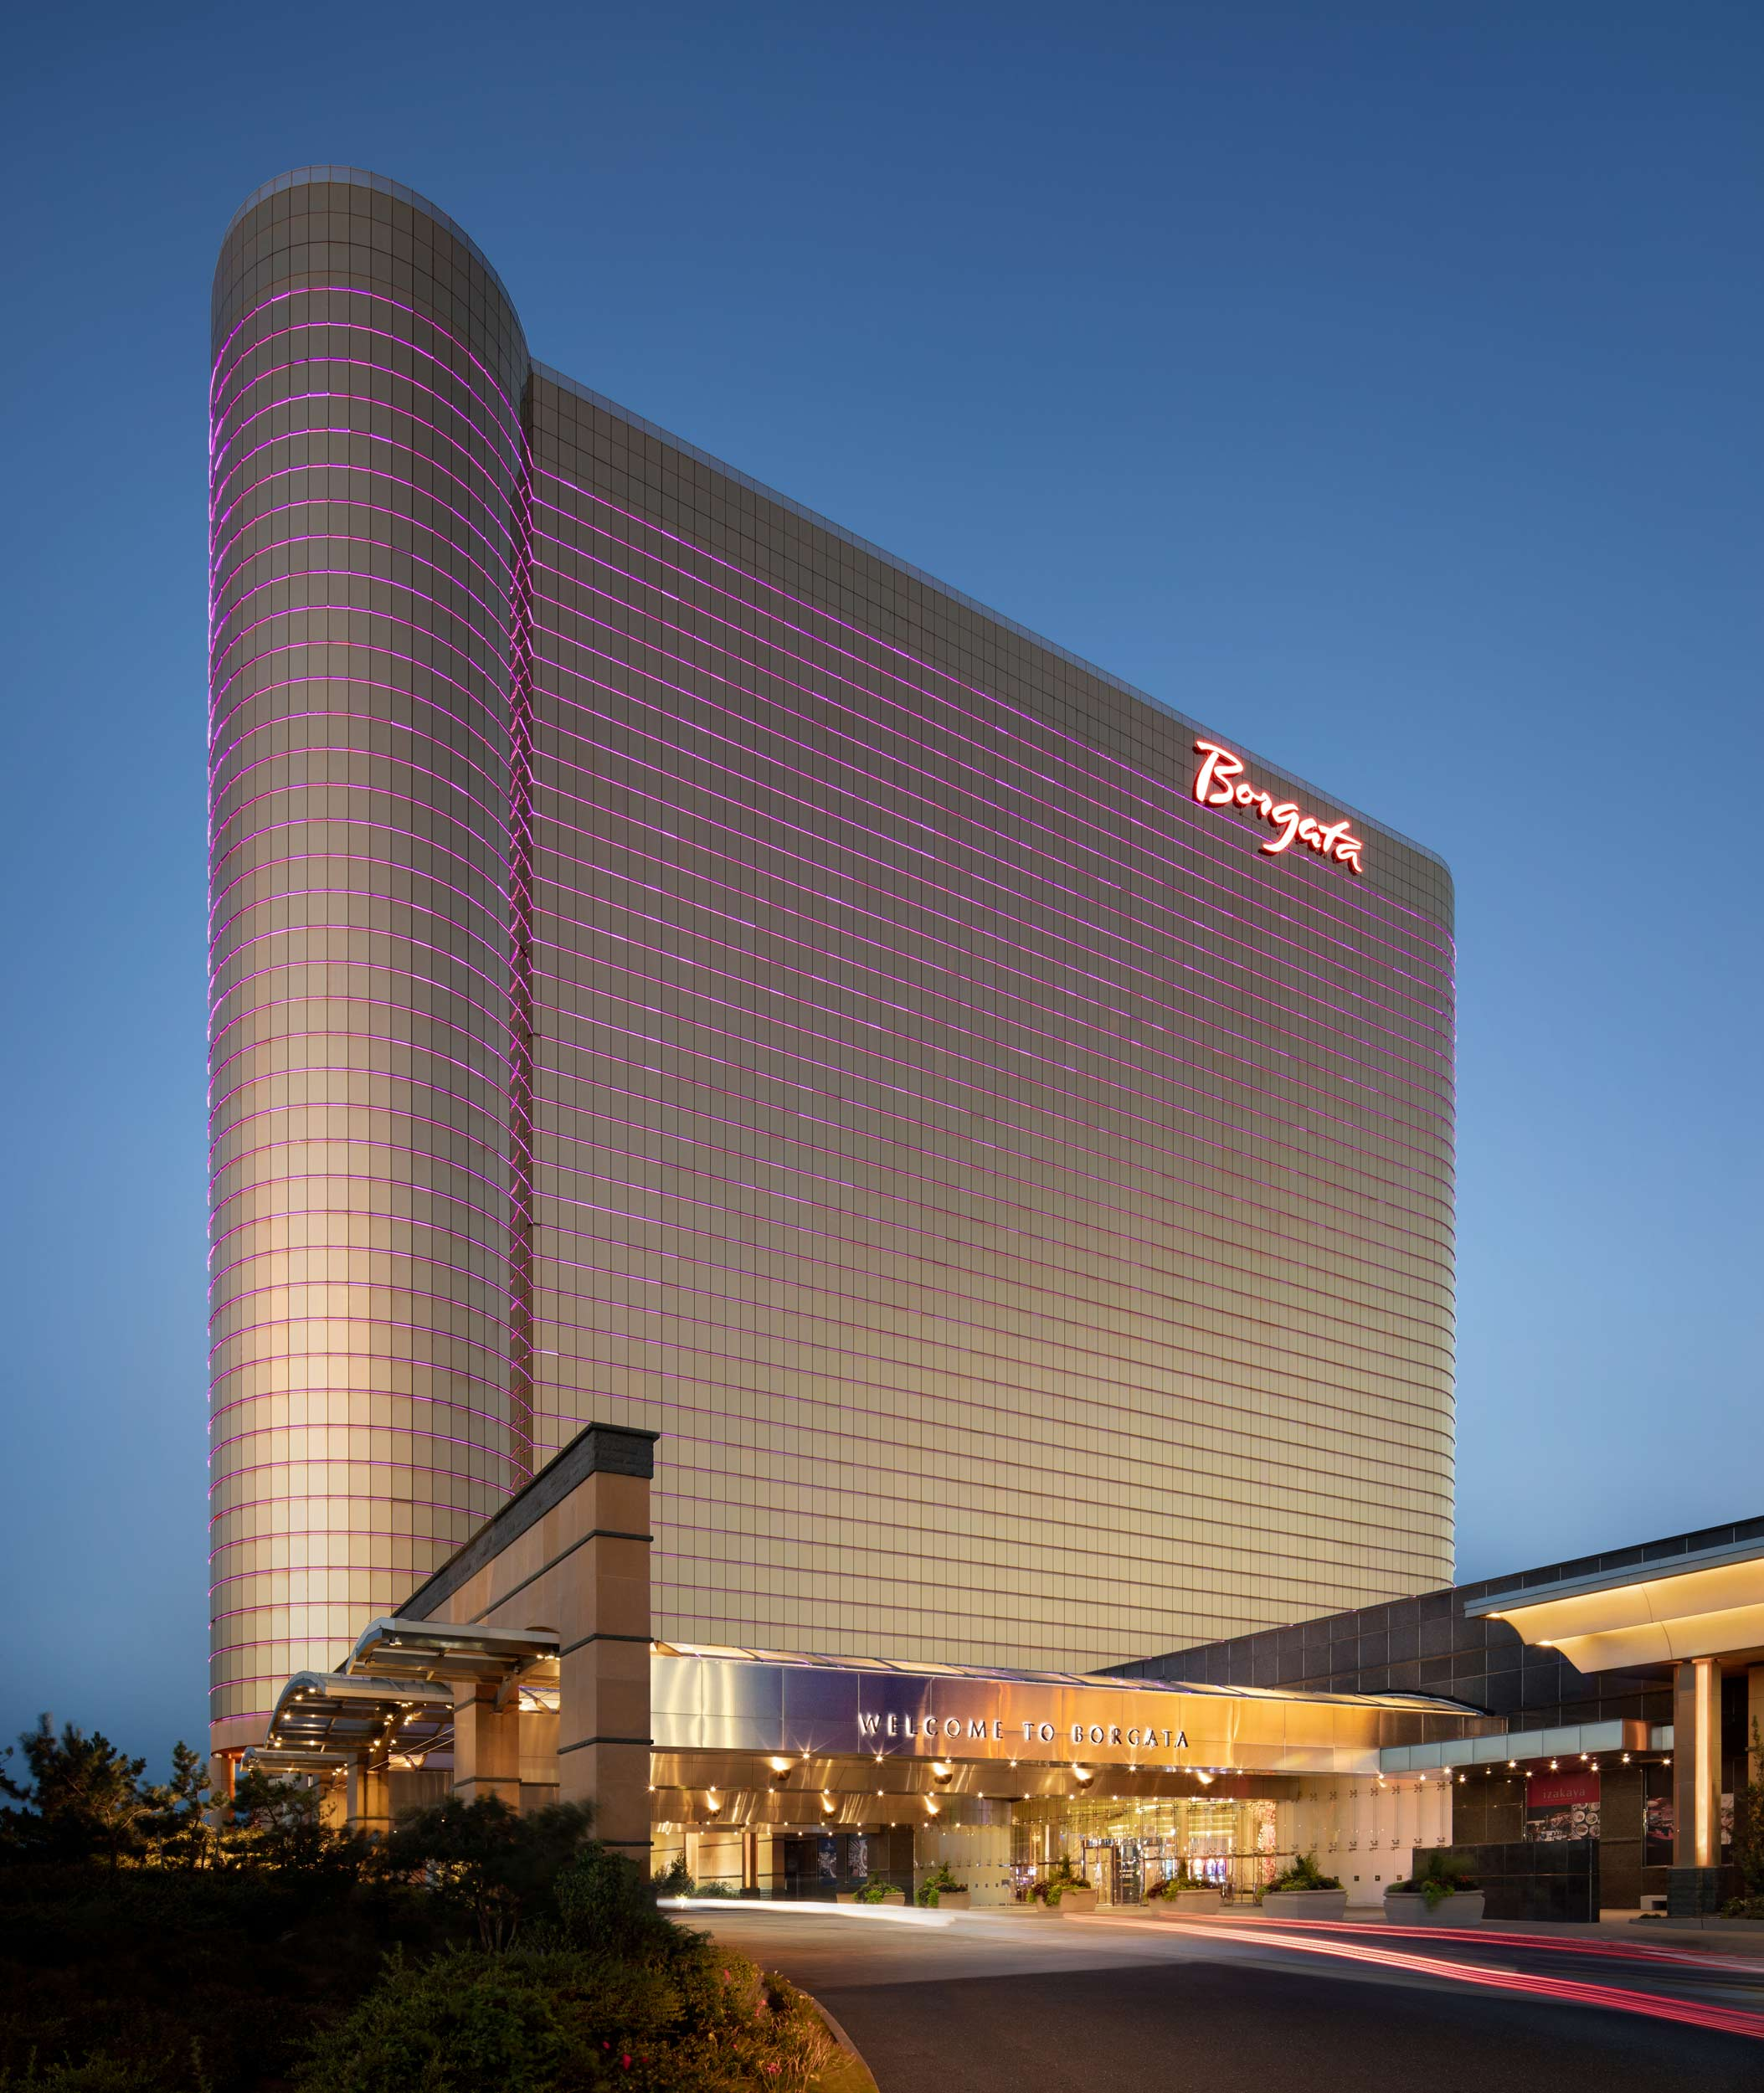 Dusk Photography of Exterior and Entry  Valet of Borgata Hotel Casino and Spa